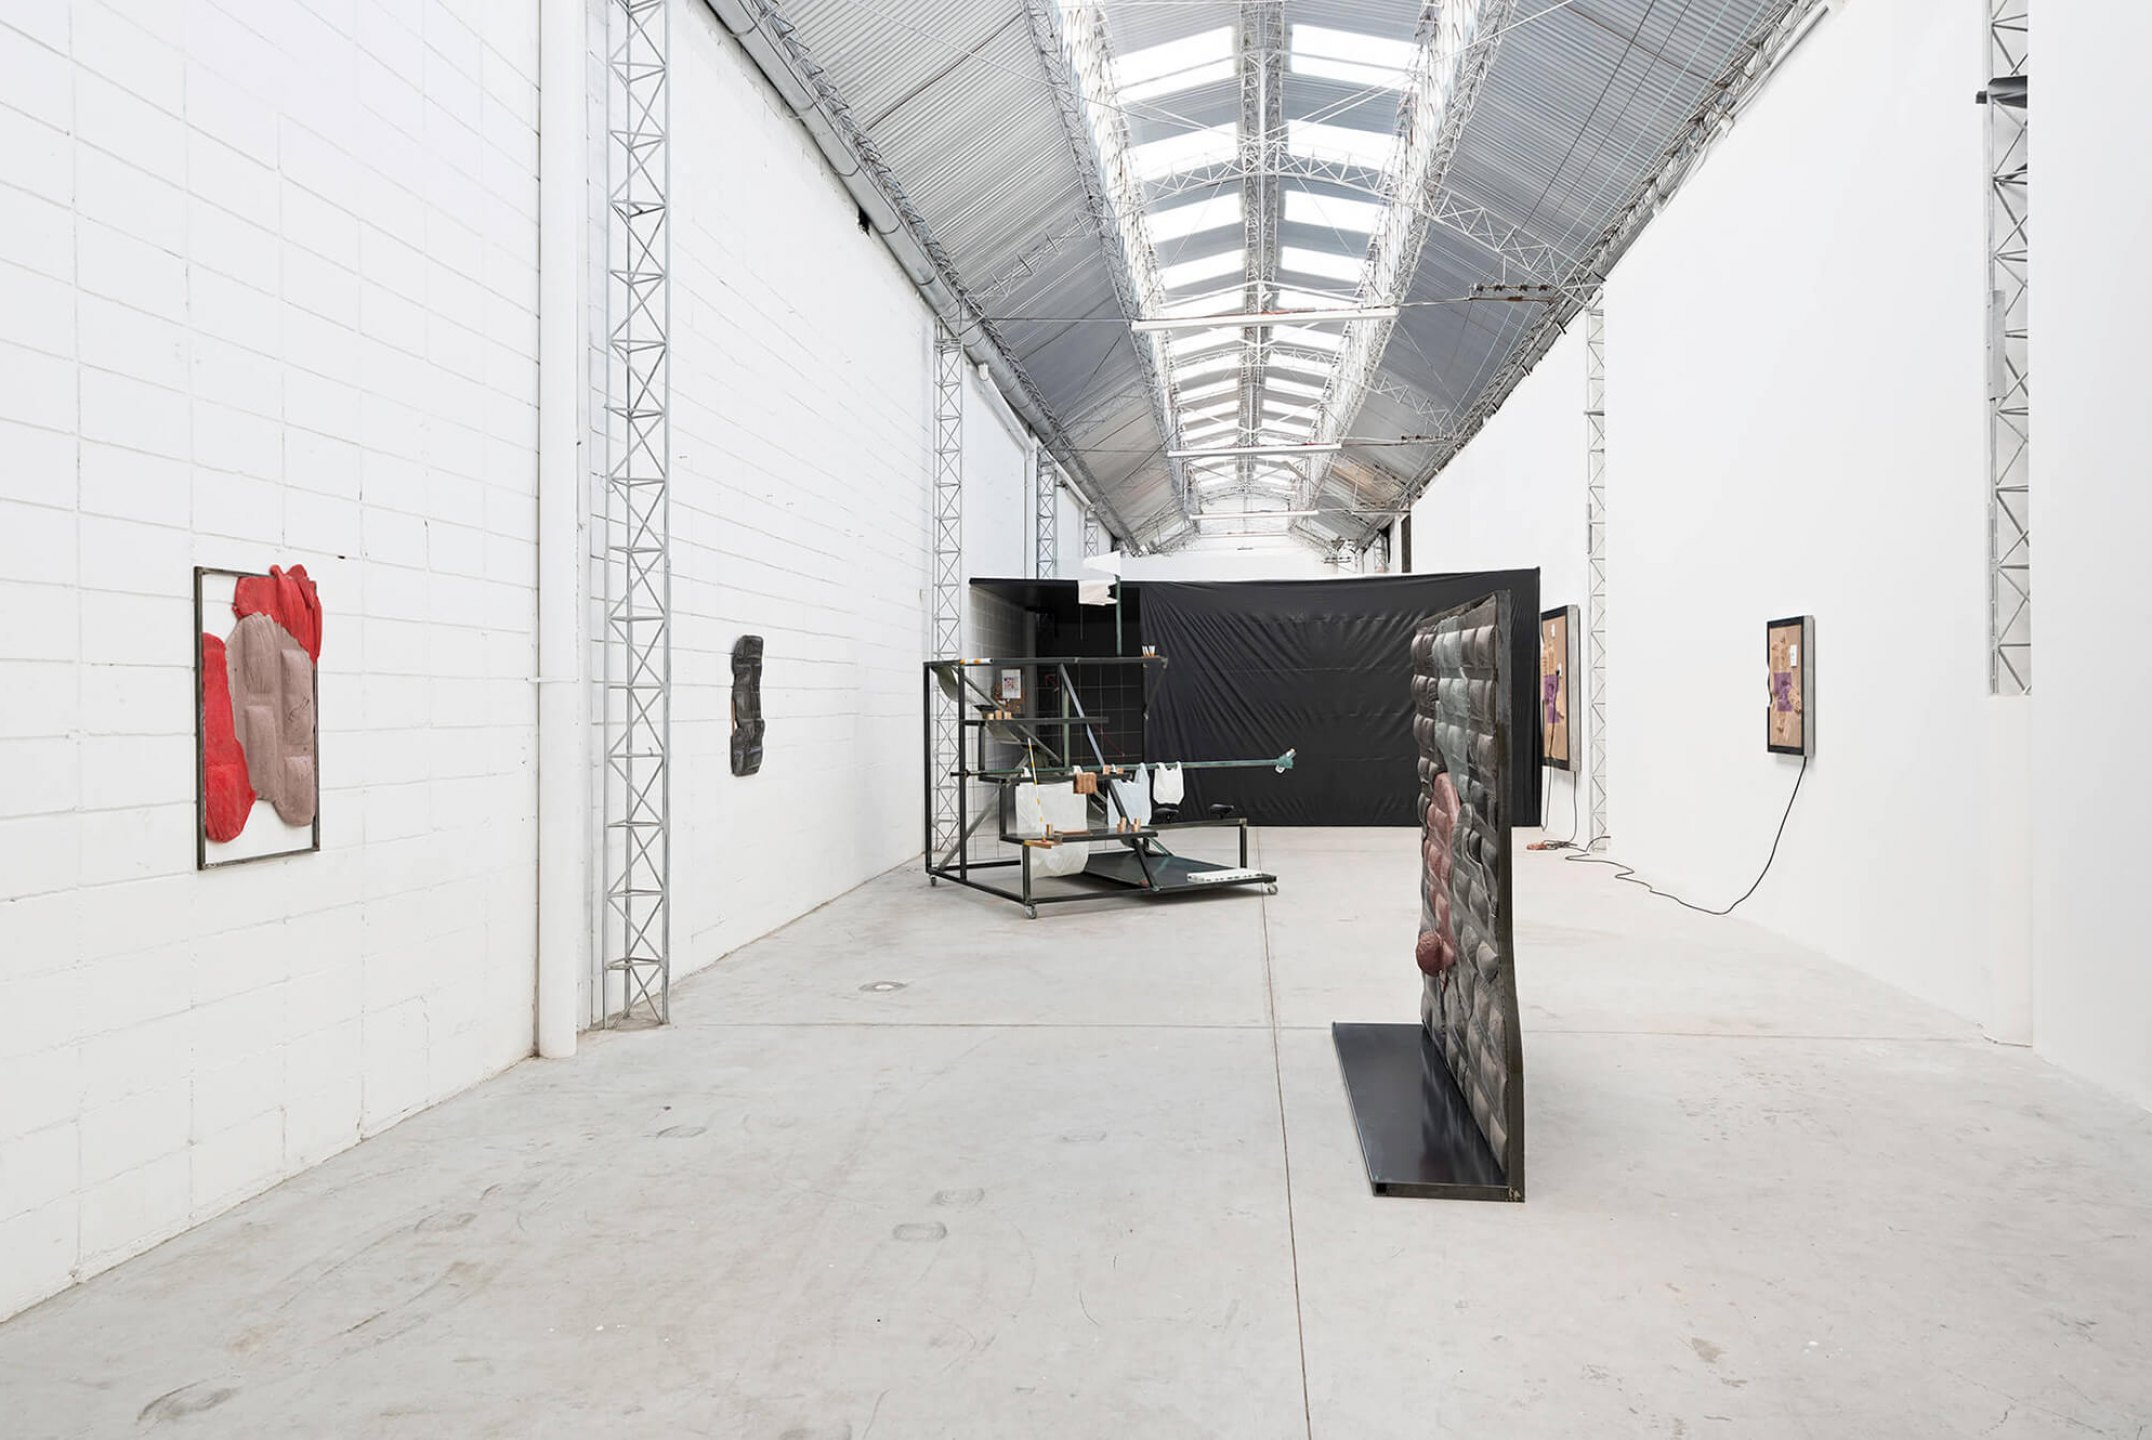 Neïl Beloufa, <em>Superlatives and resolutions</em>‭, ‬Mendes Wood‭ DM, ‬São Paulo, 2014 - Mendes Wood DM